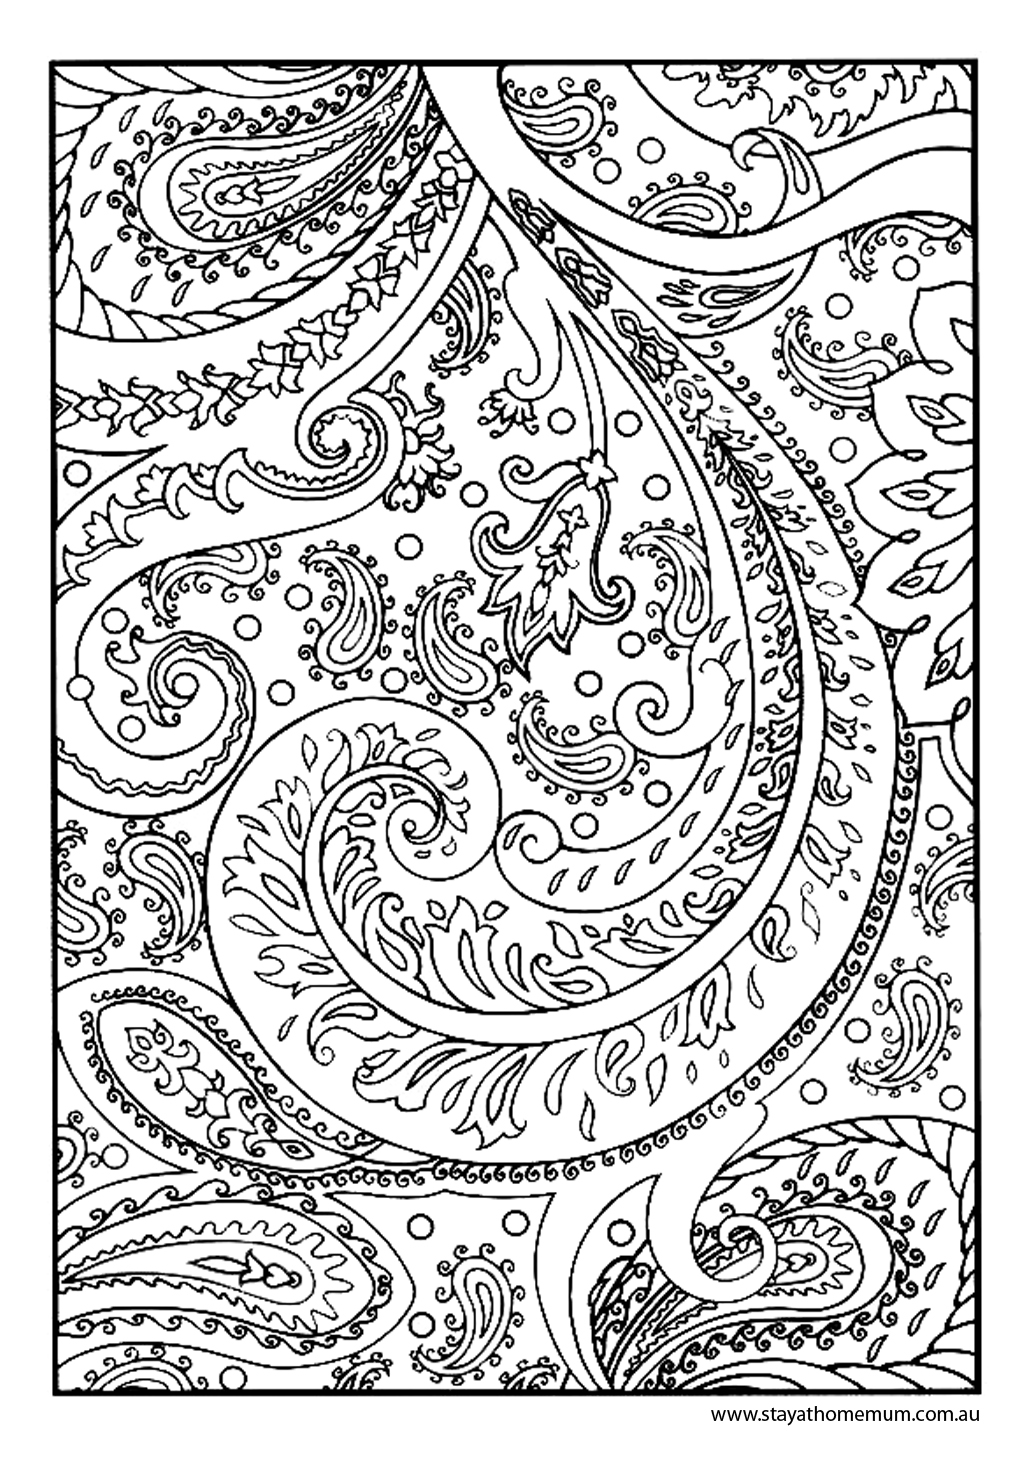 coloring adults pages printable colouring pages for kids and adults coloring pages adults